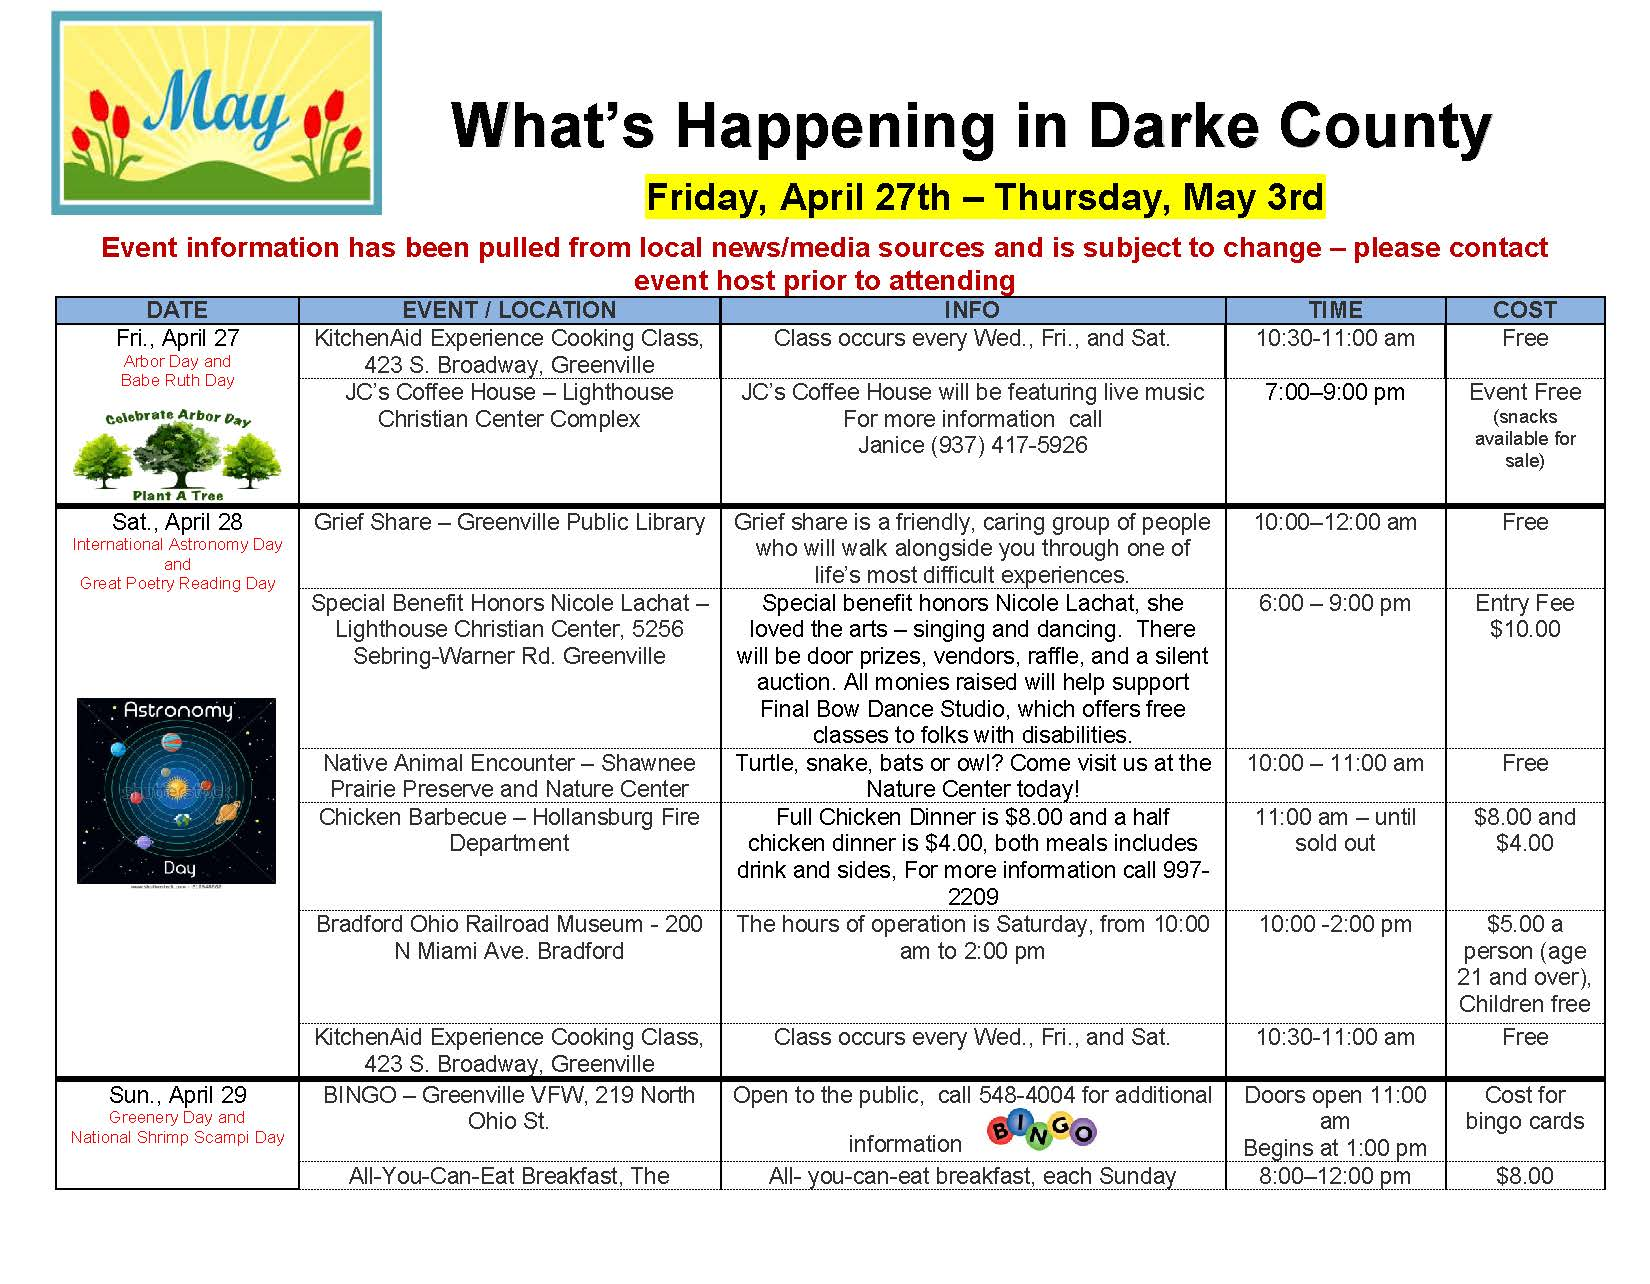 What's Happening in Darke County – 04/27/18 through 05/10/18